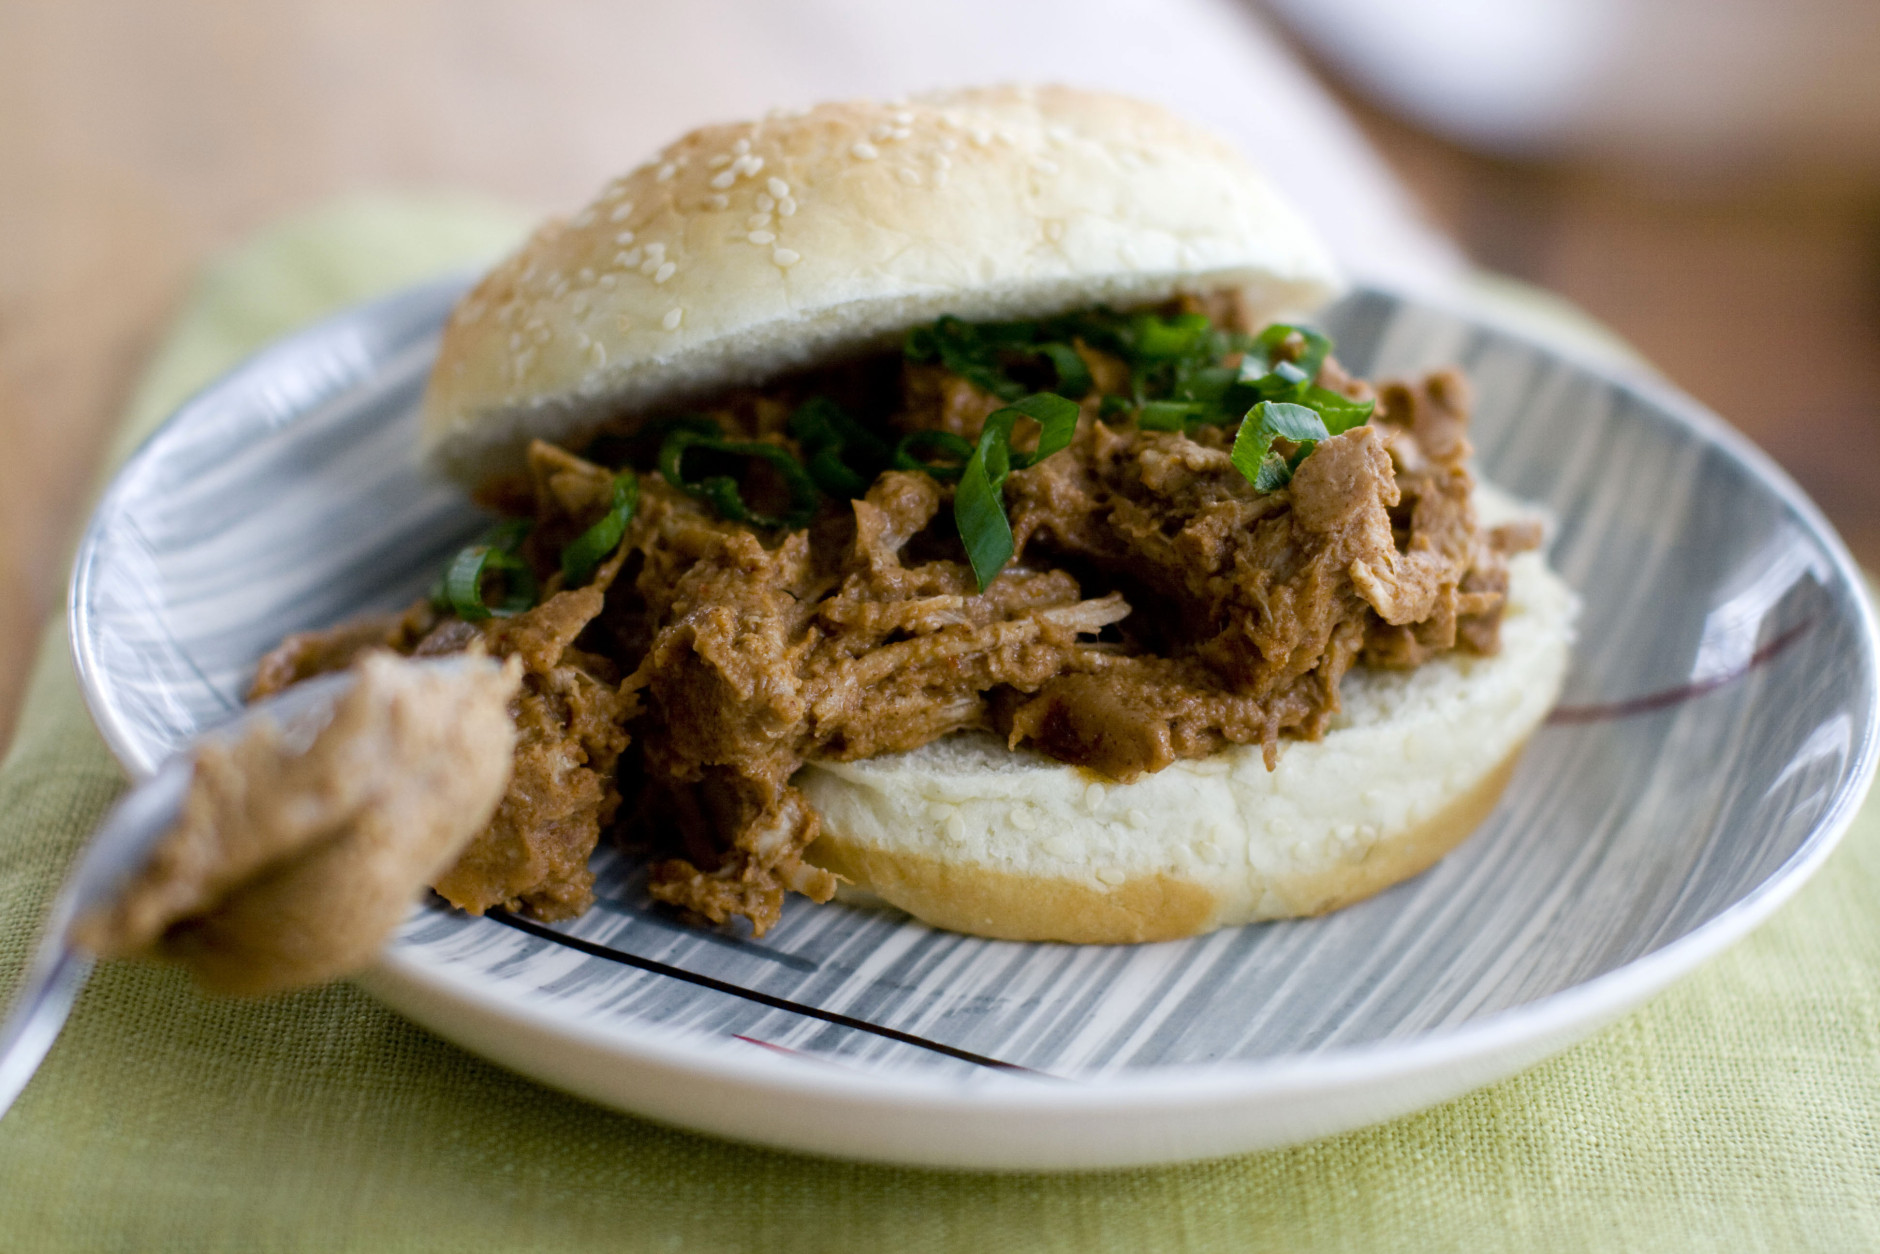 Almond butter gives a thick, rich texture and flavor to this mole-style pulled pork sandwich. (AP Photo/Matthew Mead)